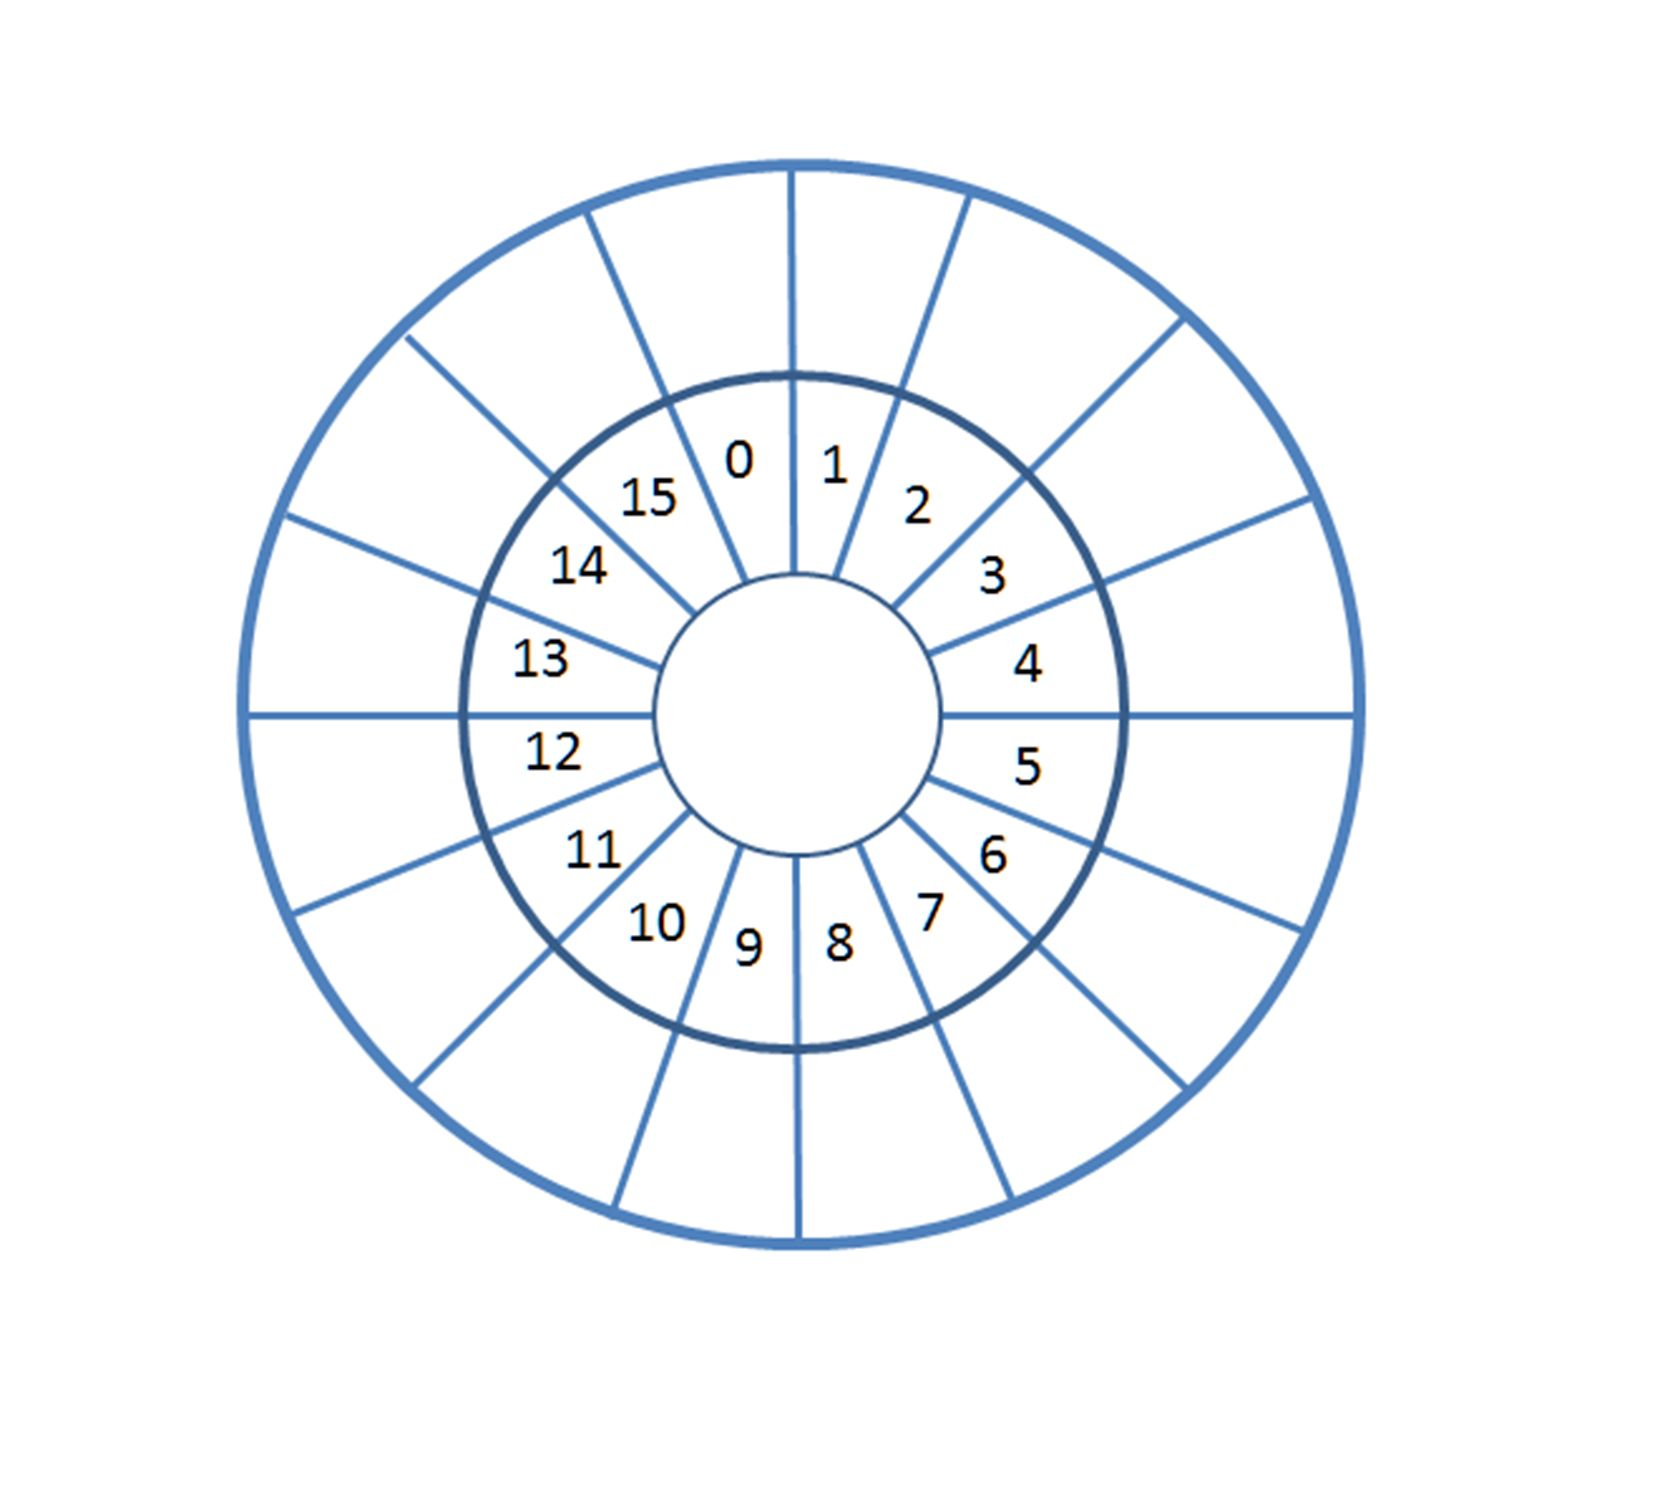 Multiplication Wheel Up To 15 Classical Conversations Classical Conversations Homeschool Multiplication Wheel Math Addition Worksheets